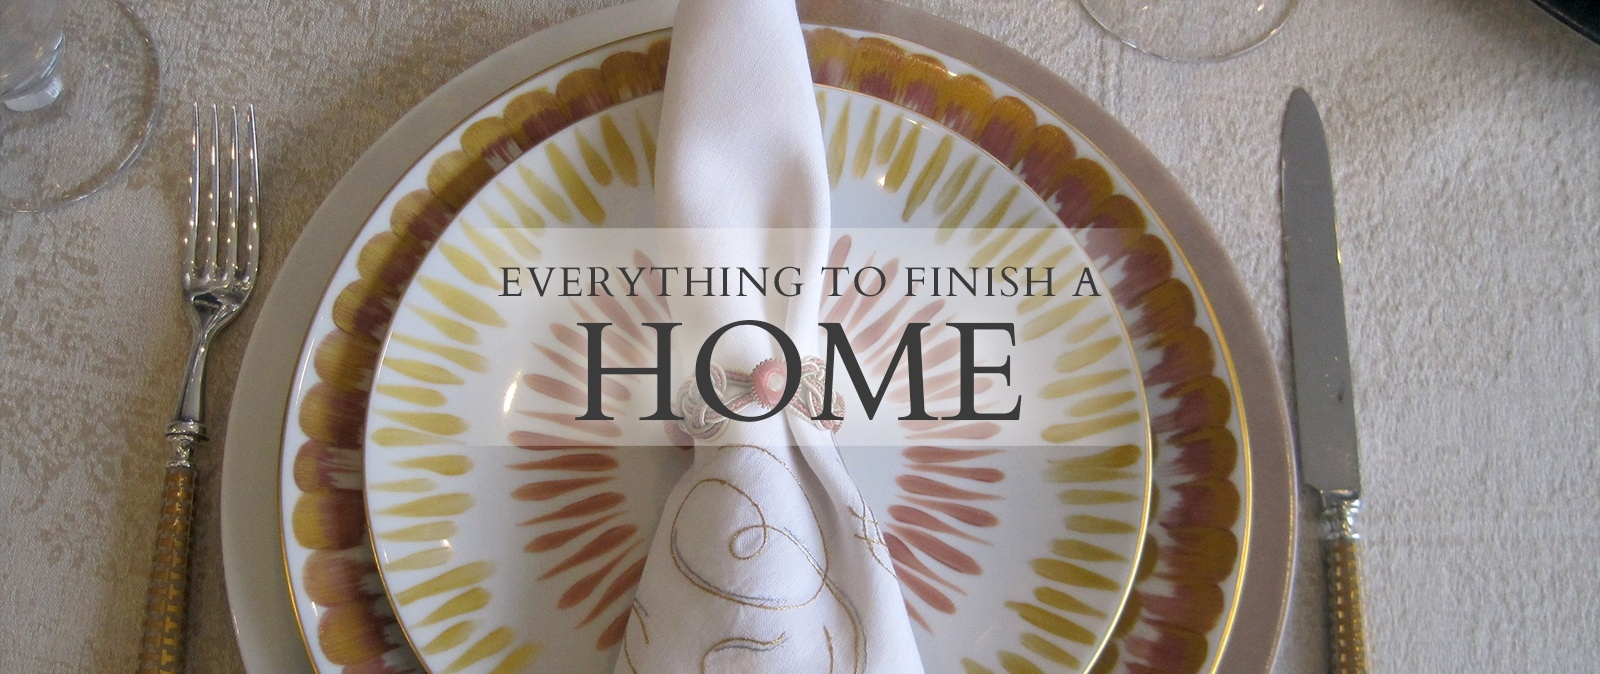 Everything to Finish a Home - Luxury Home Decor by The Silver Peacock Inc.